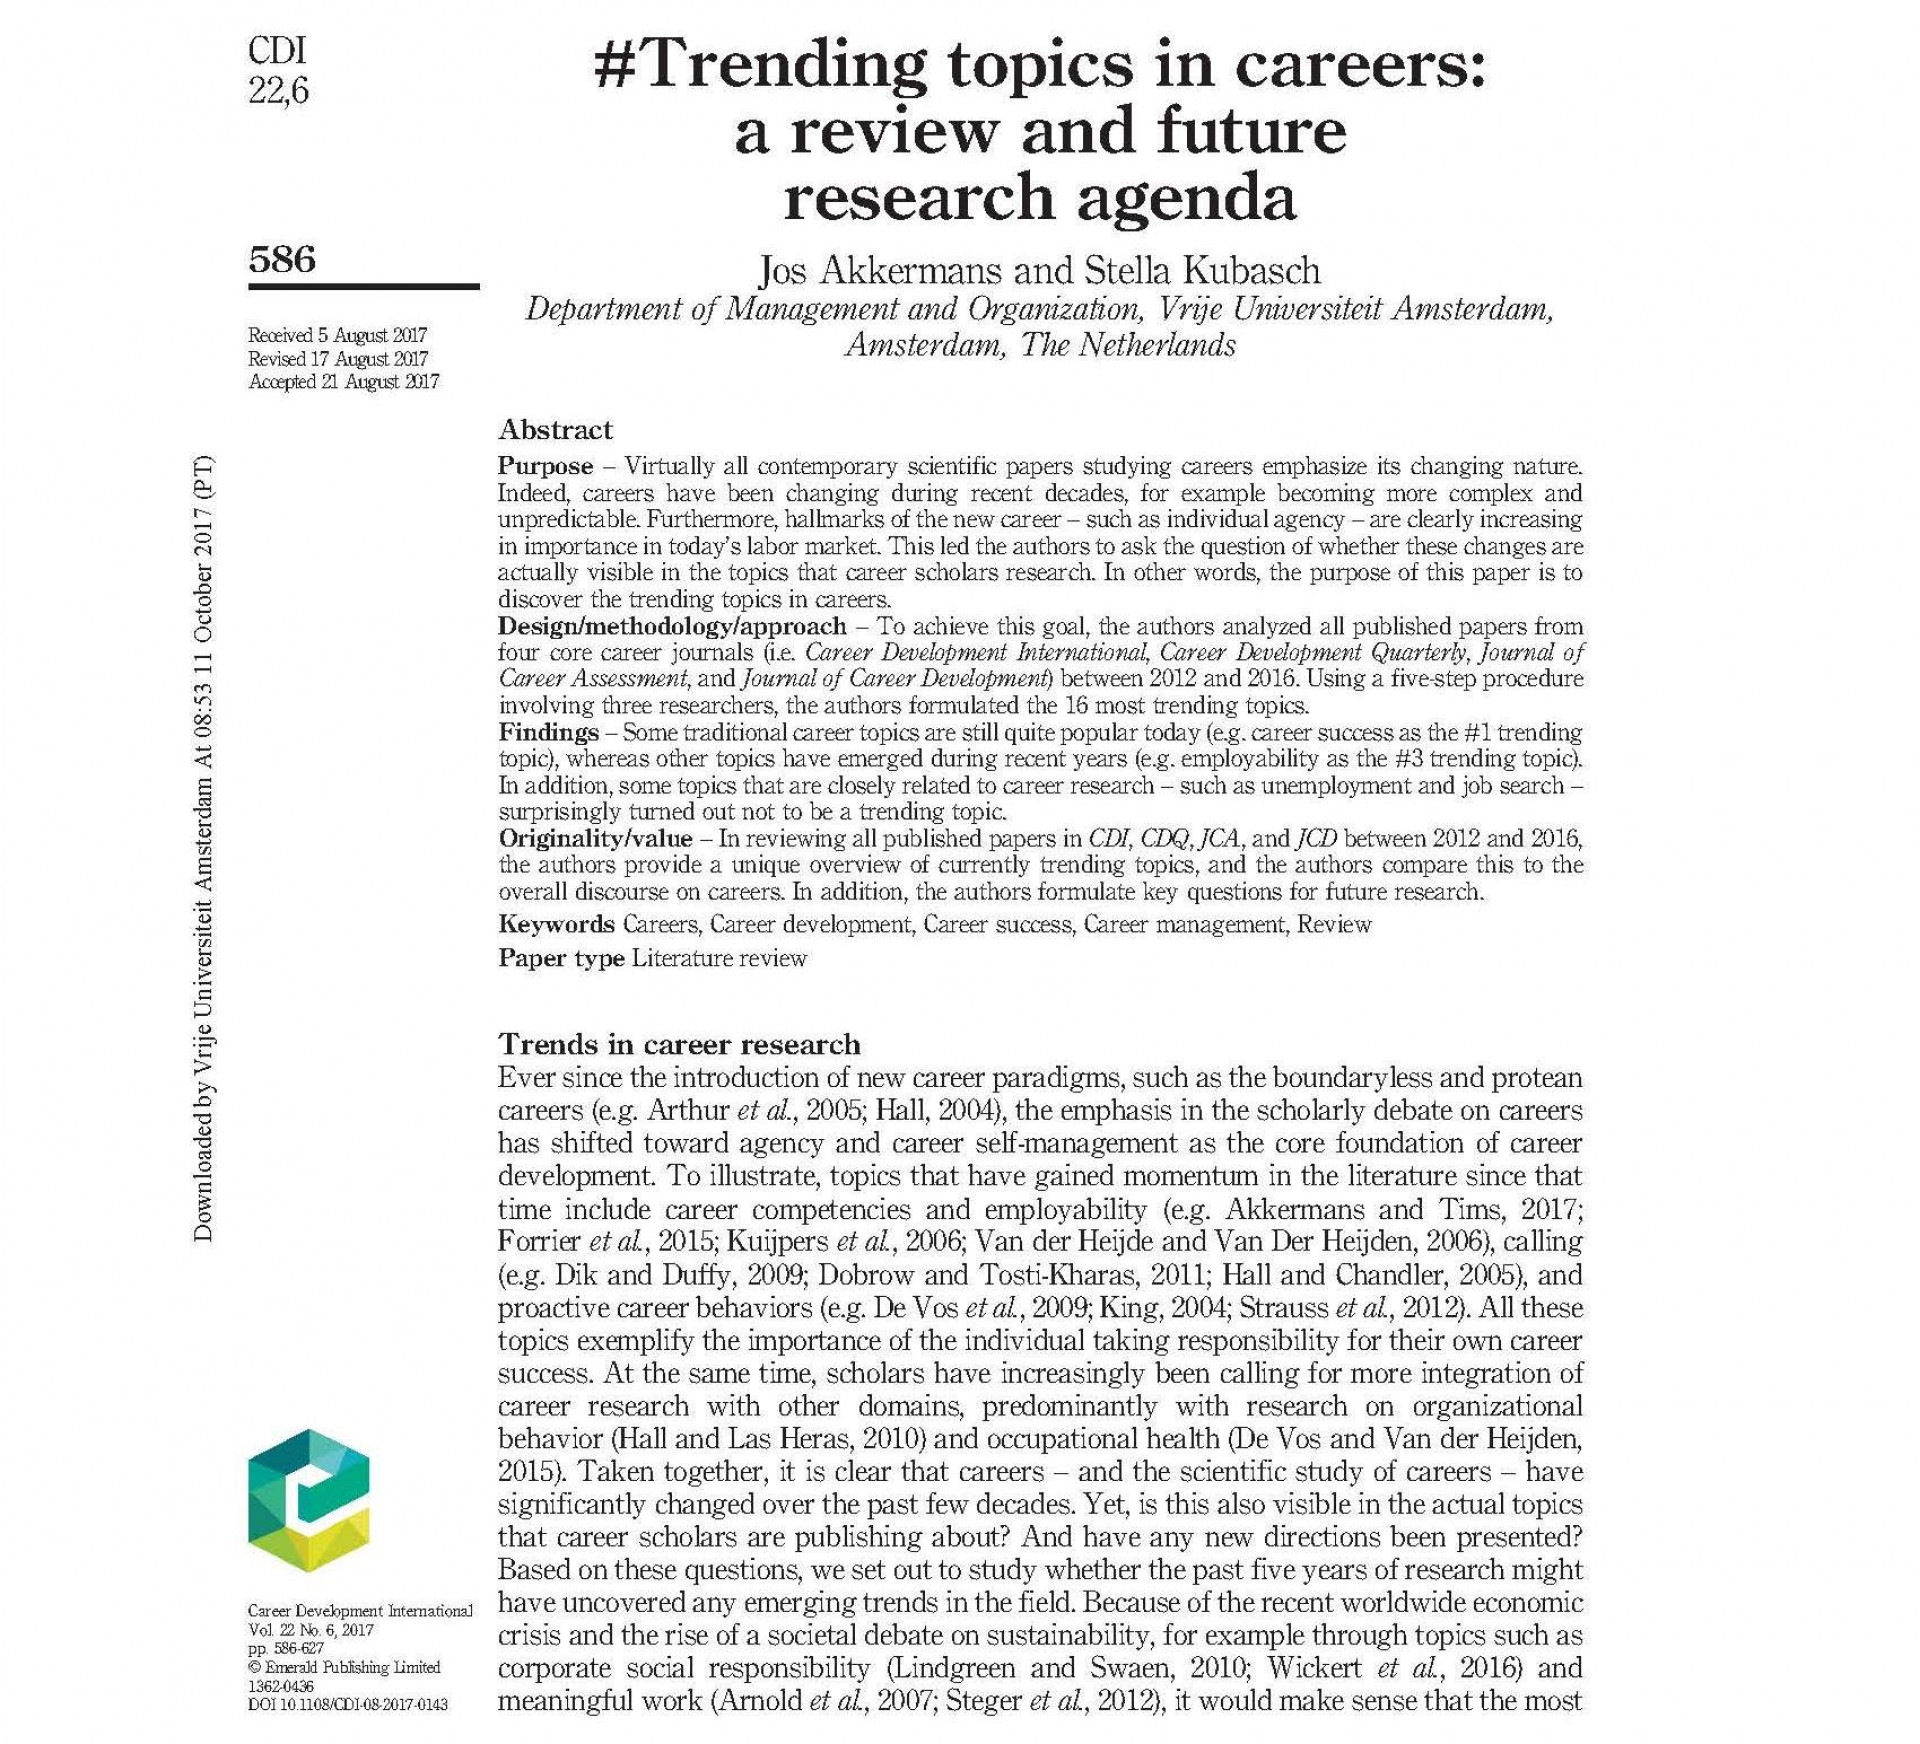 022 59e096d33a29650001209782 1620 20akkermans202620kubasch20201720 20trending20topics20in20careers Research Paper Topics For Impressive Papers Scientific High School Students In The Philippines 1920